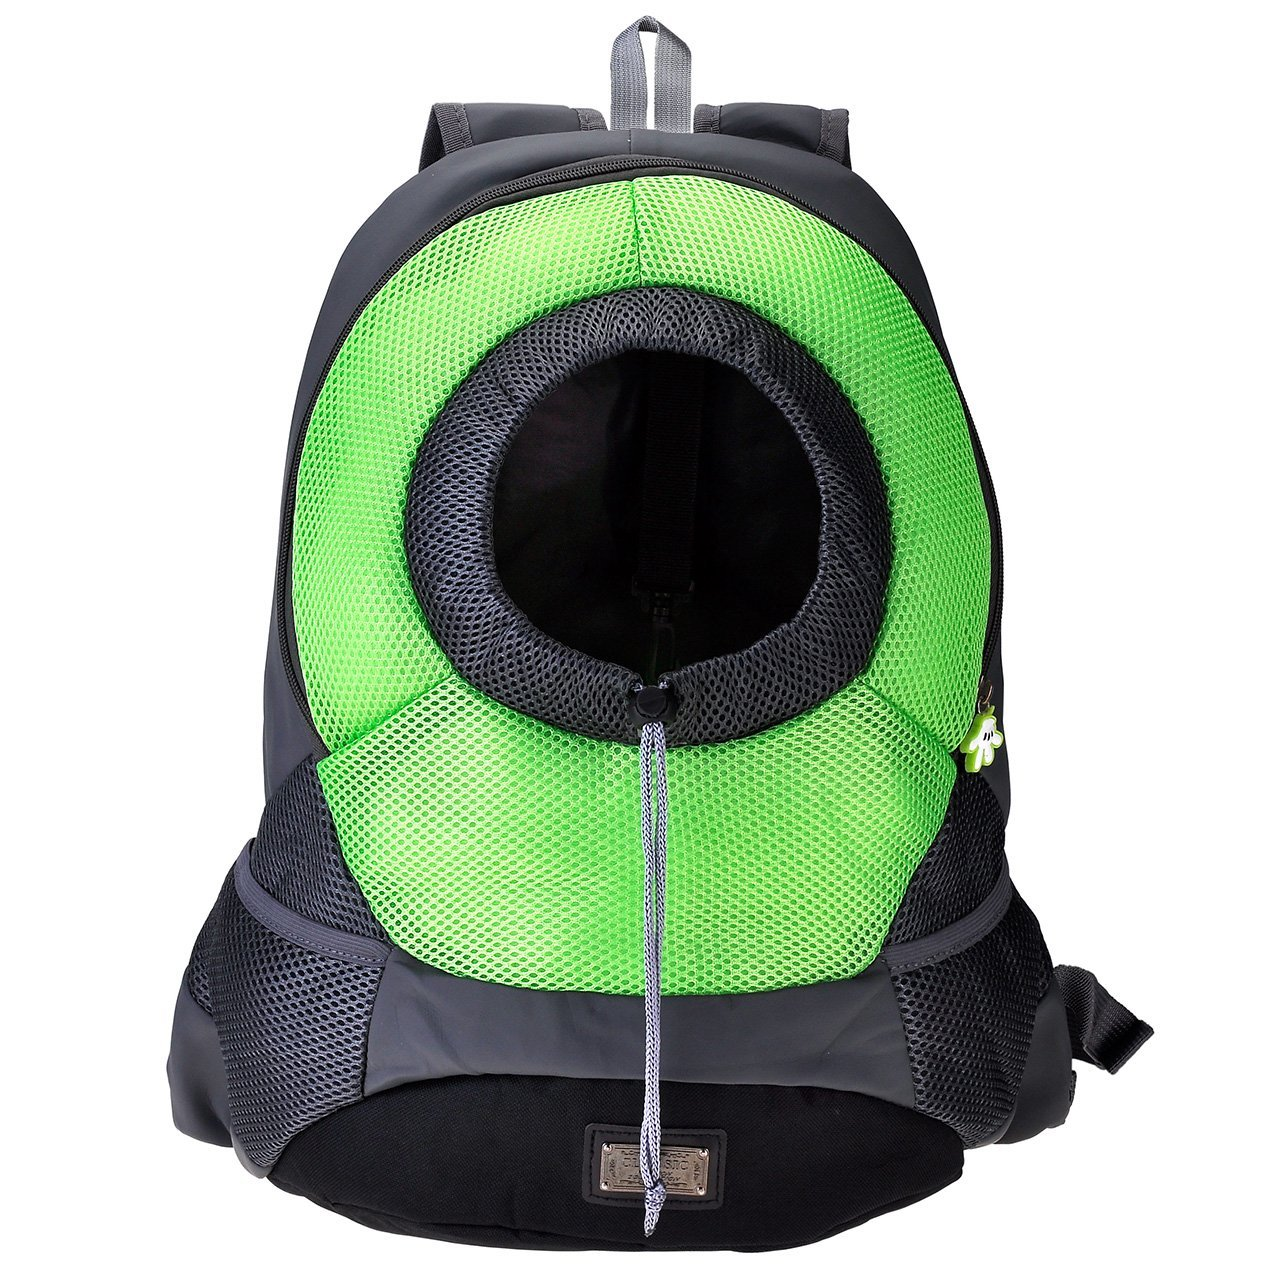 Yoption Portable Puppy Cat Travel Front Backpack, Breathable Mesh Head out Design Padded Adjustable Double Shoulder Straps Outdoor Pet Bag (S, Green)